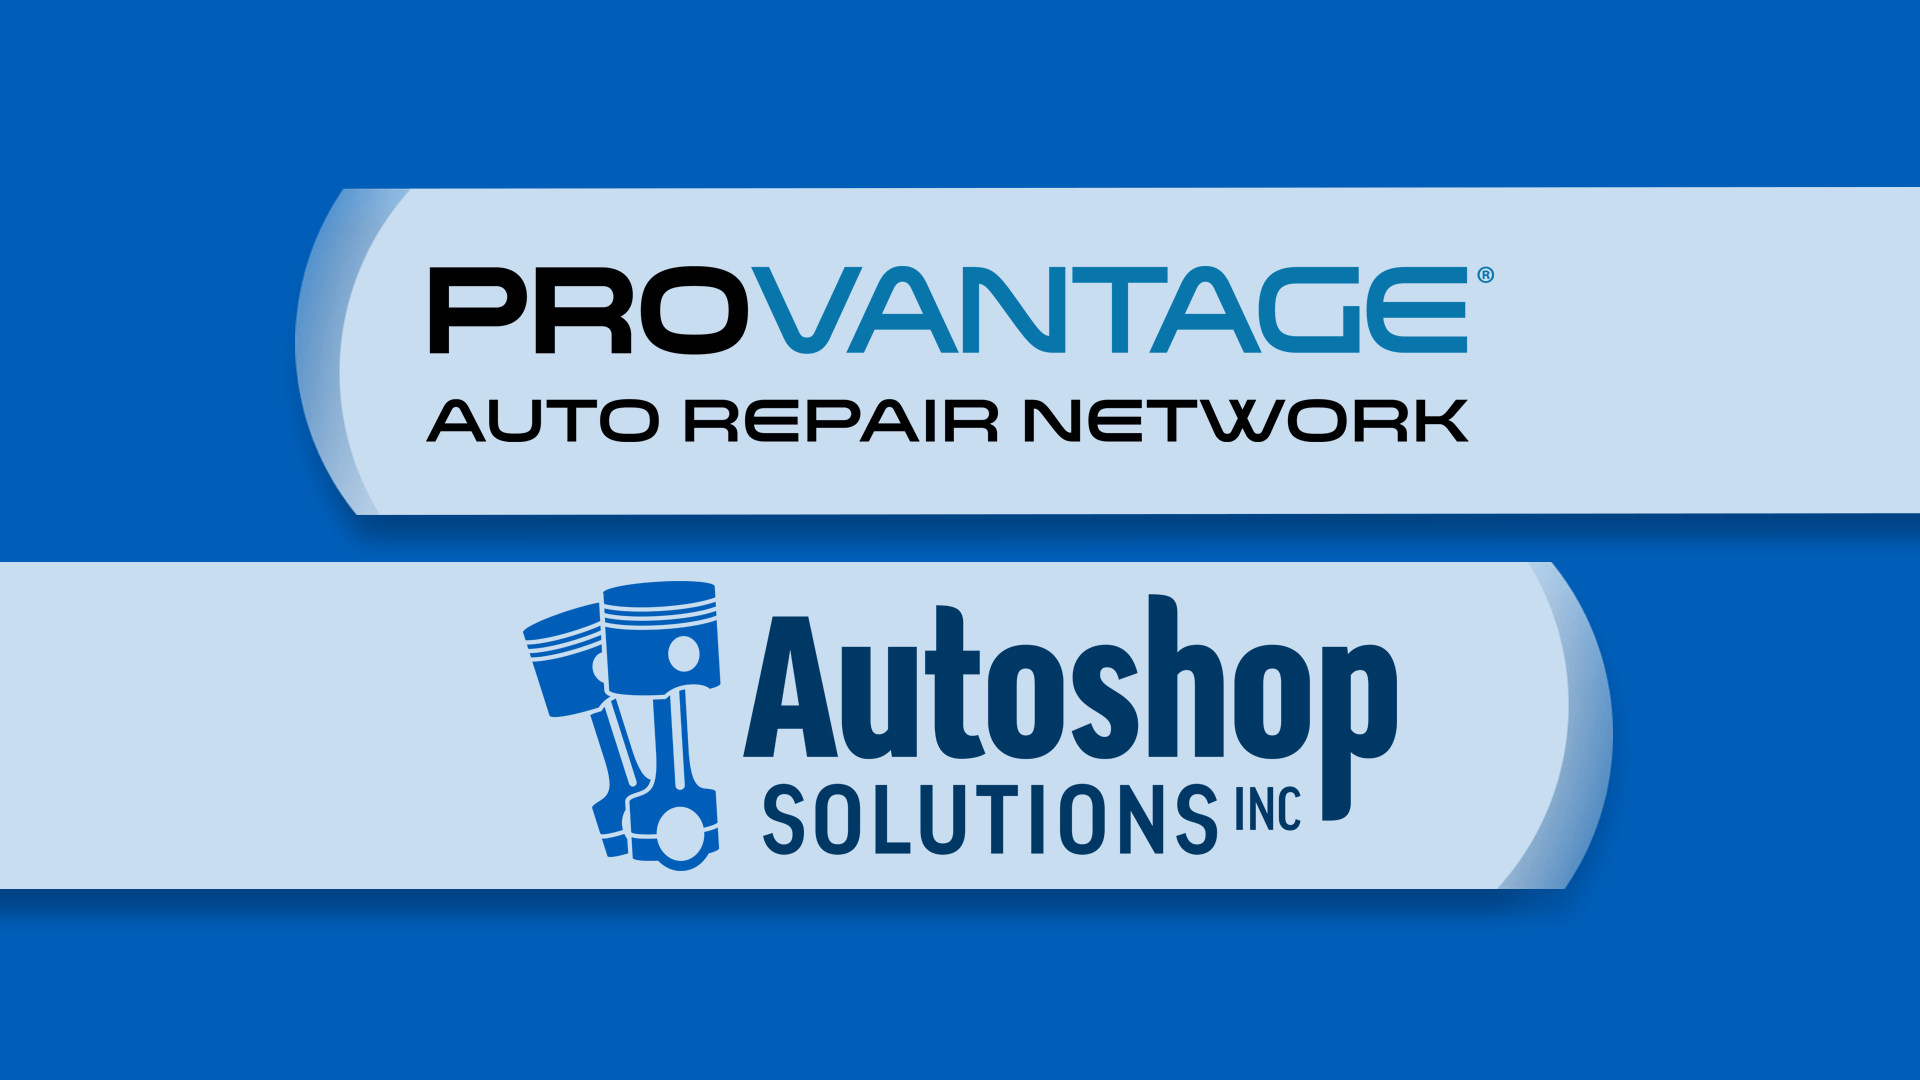 ProVantage partnership with Autoshop Solutions